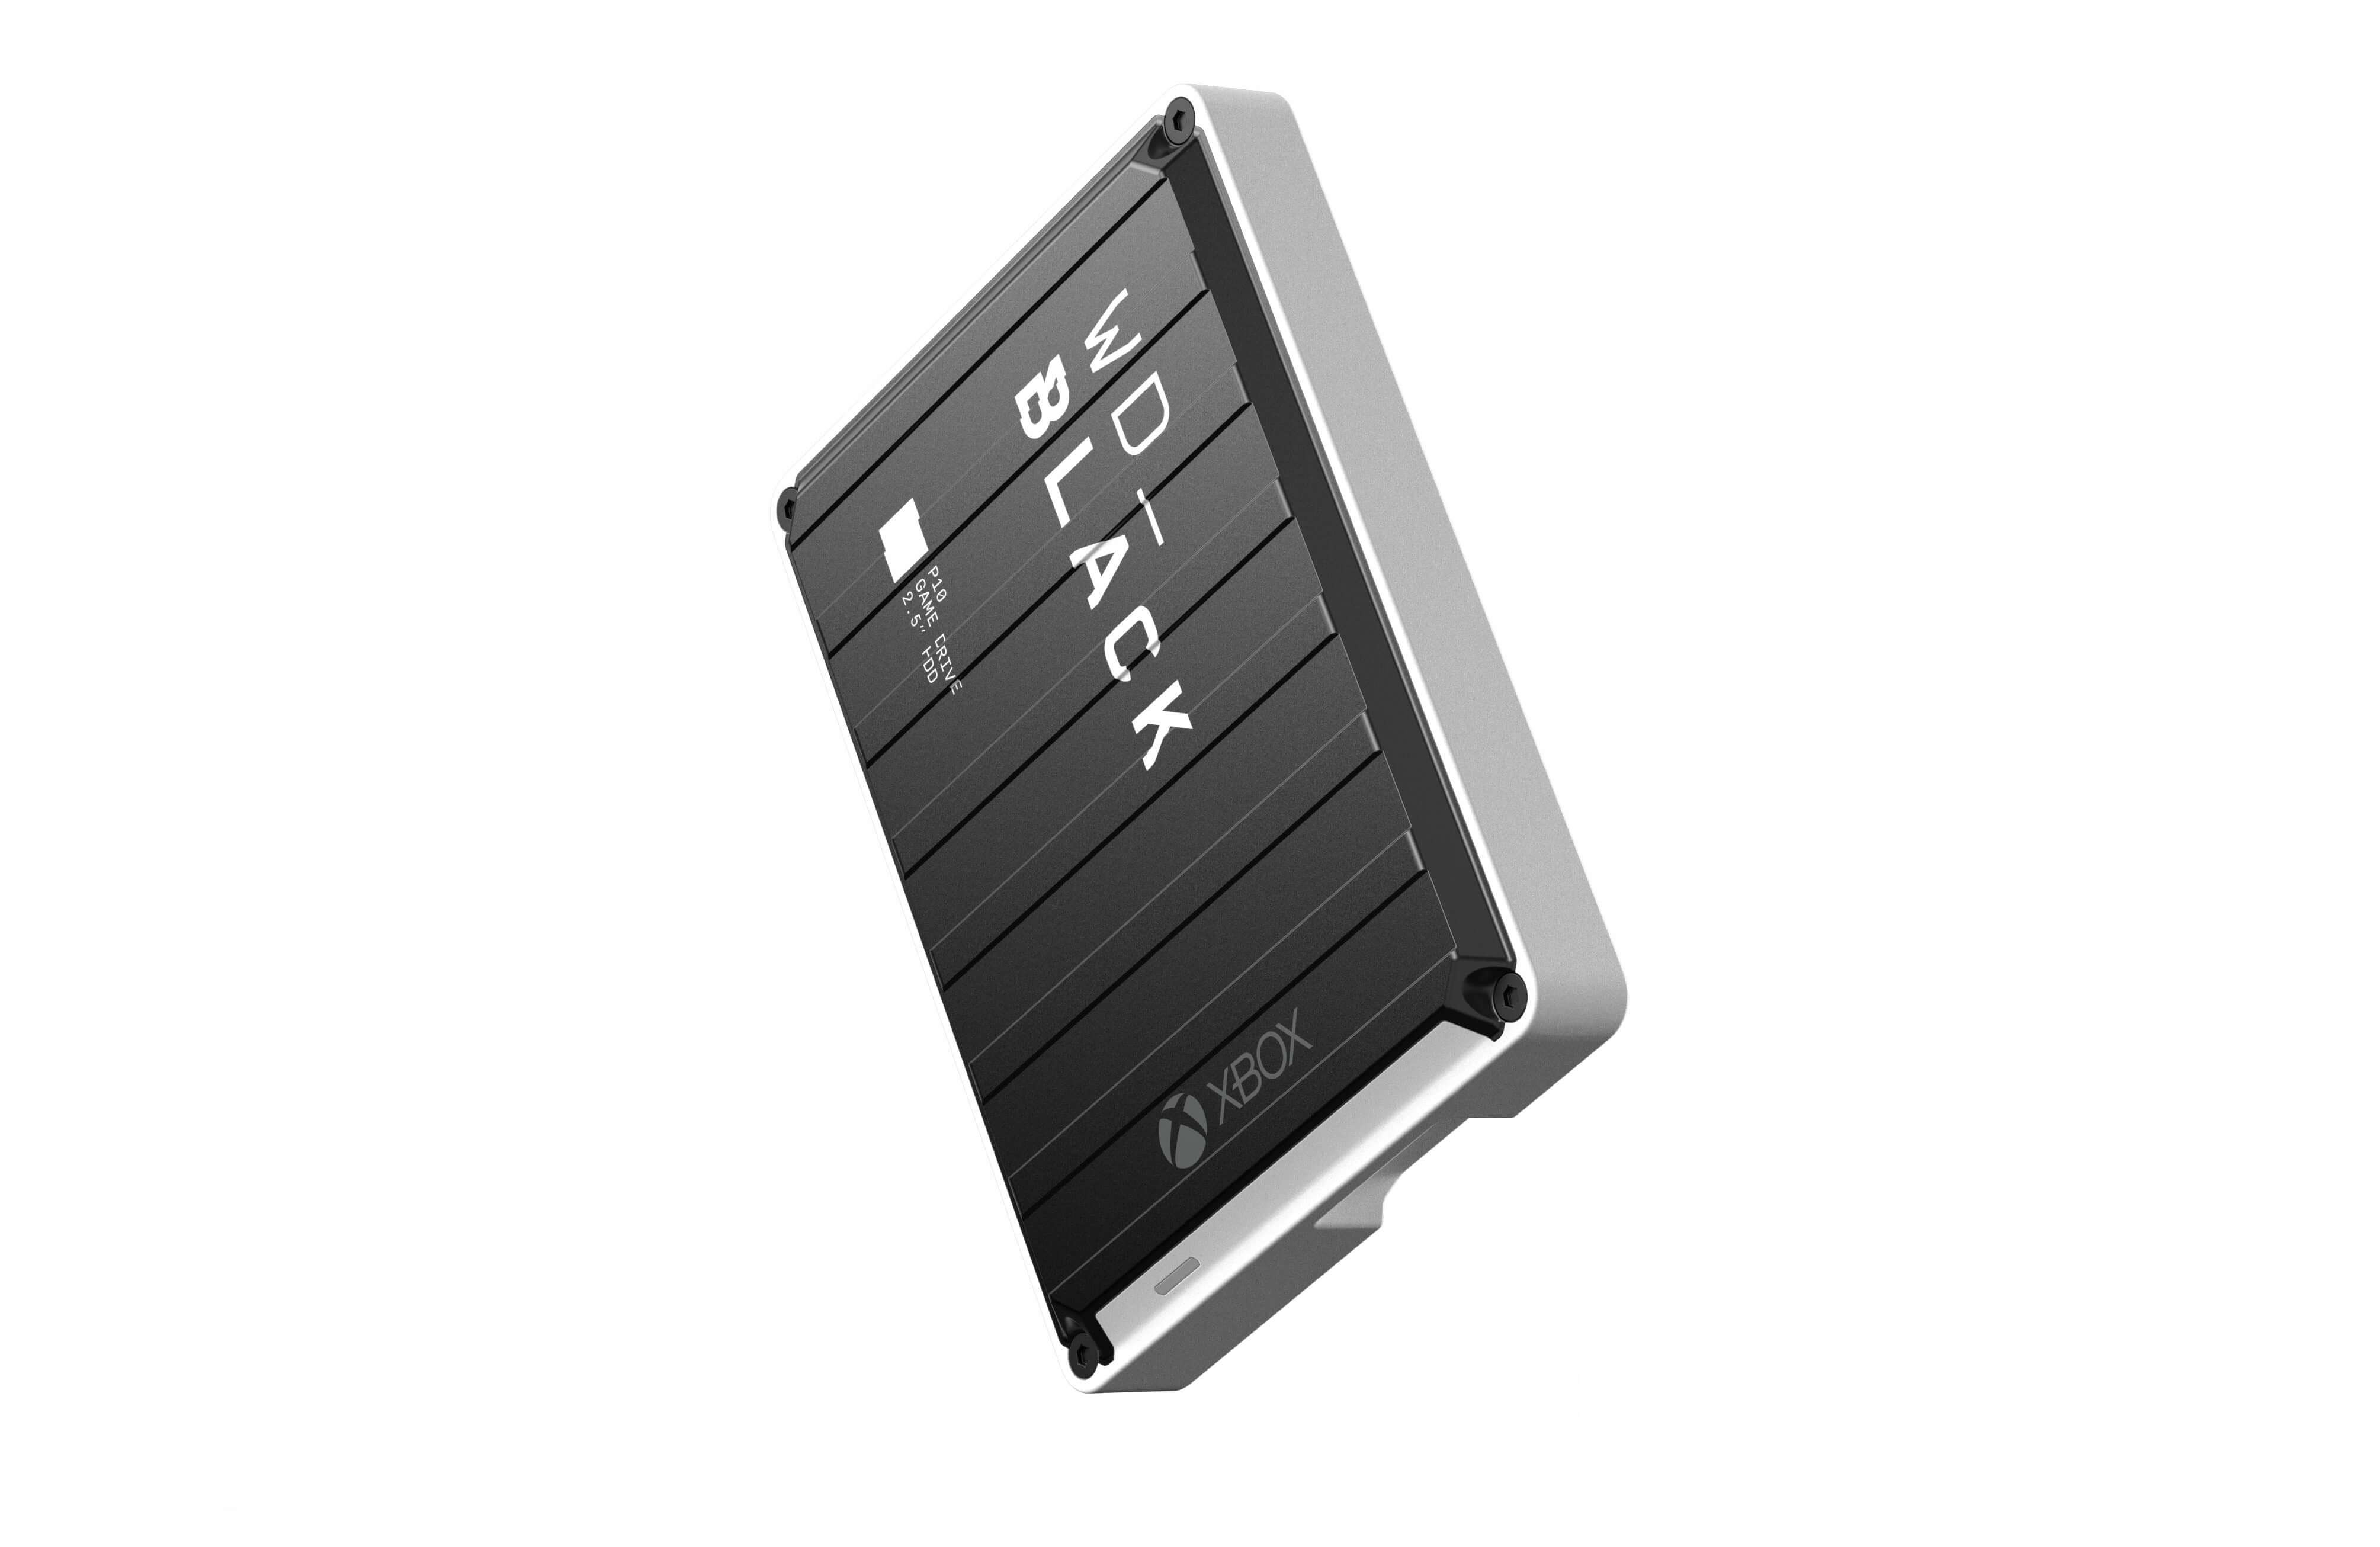 WD Black P10 for